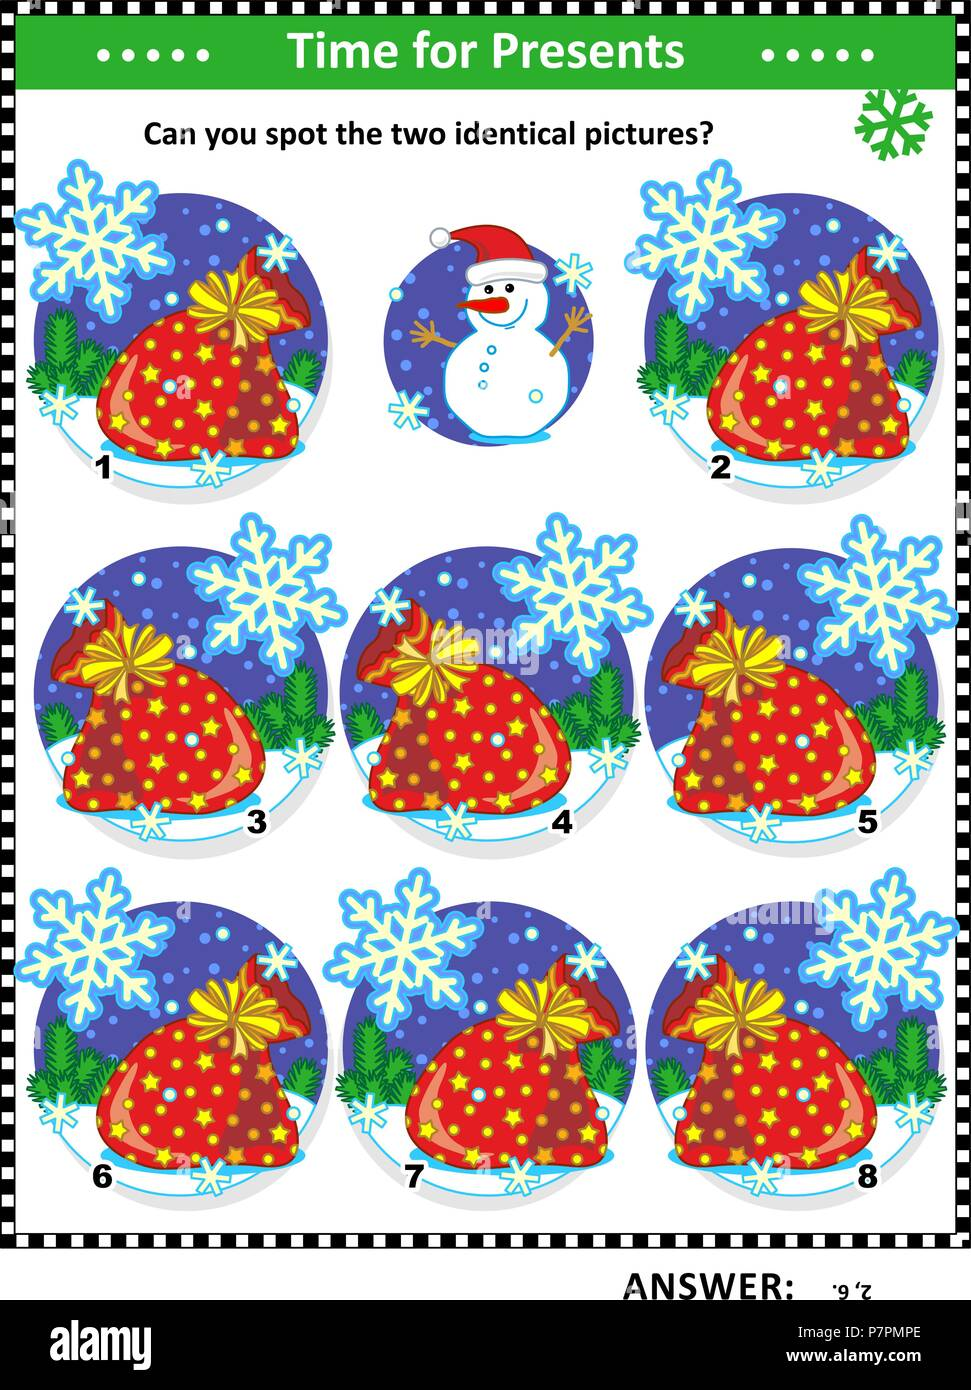 Winter, Christmas or New Year themed visual puzzle with Santa's sacks full of toys and presents: Can you spot the two identical pictures? - Stock Vector